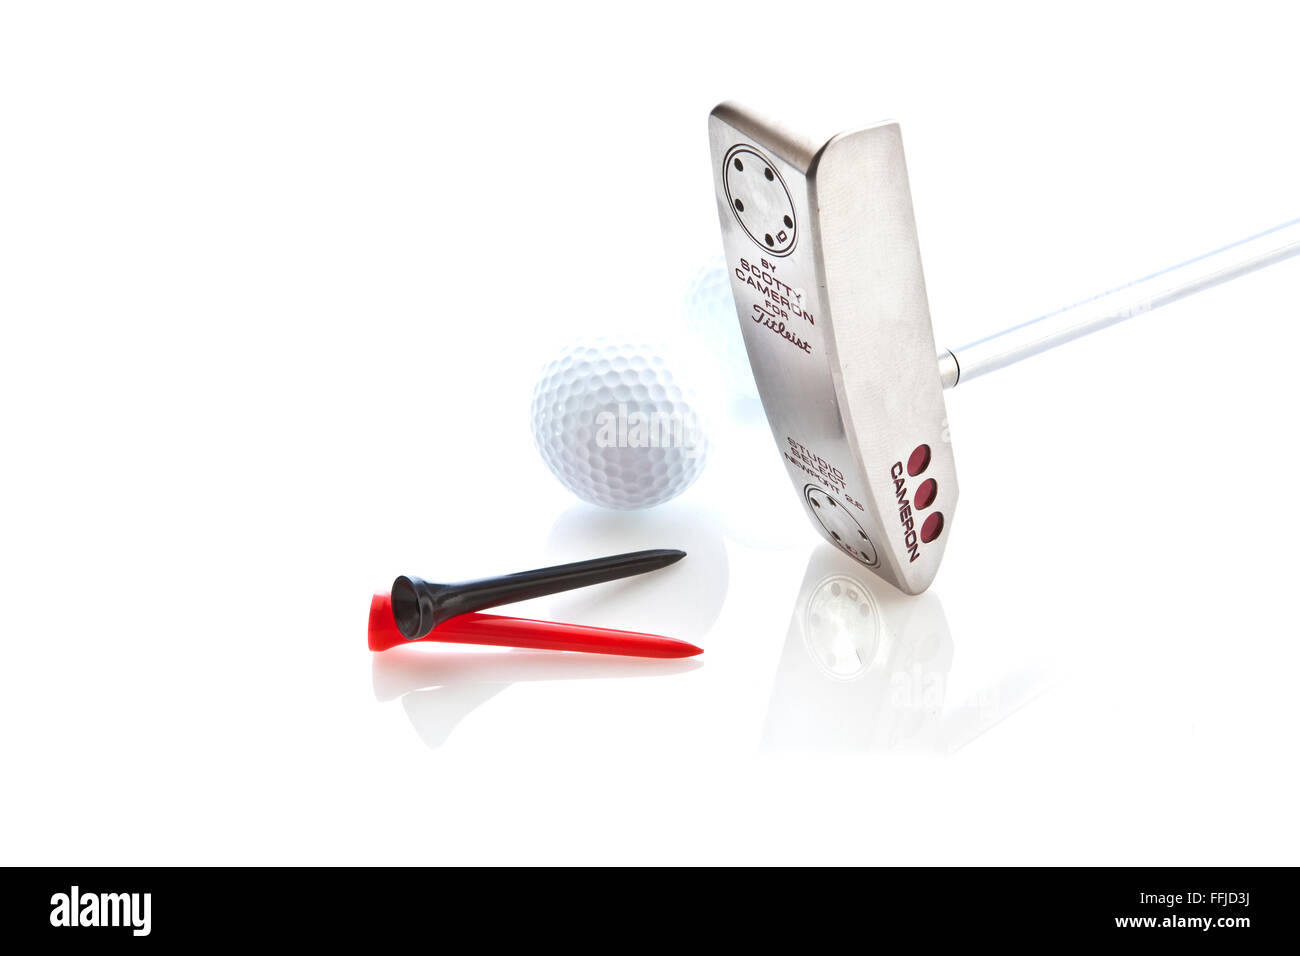 Scotty Cameron Putter with Golf Ball and Tees on a White Background - Stock Image